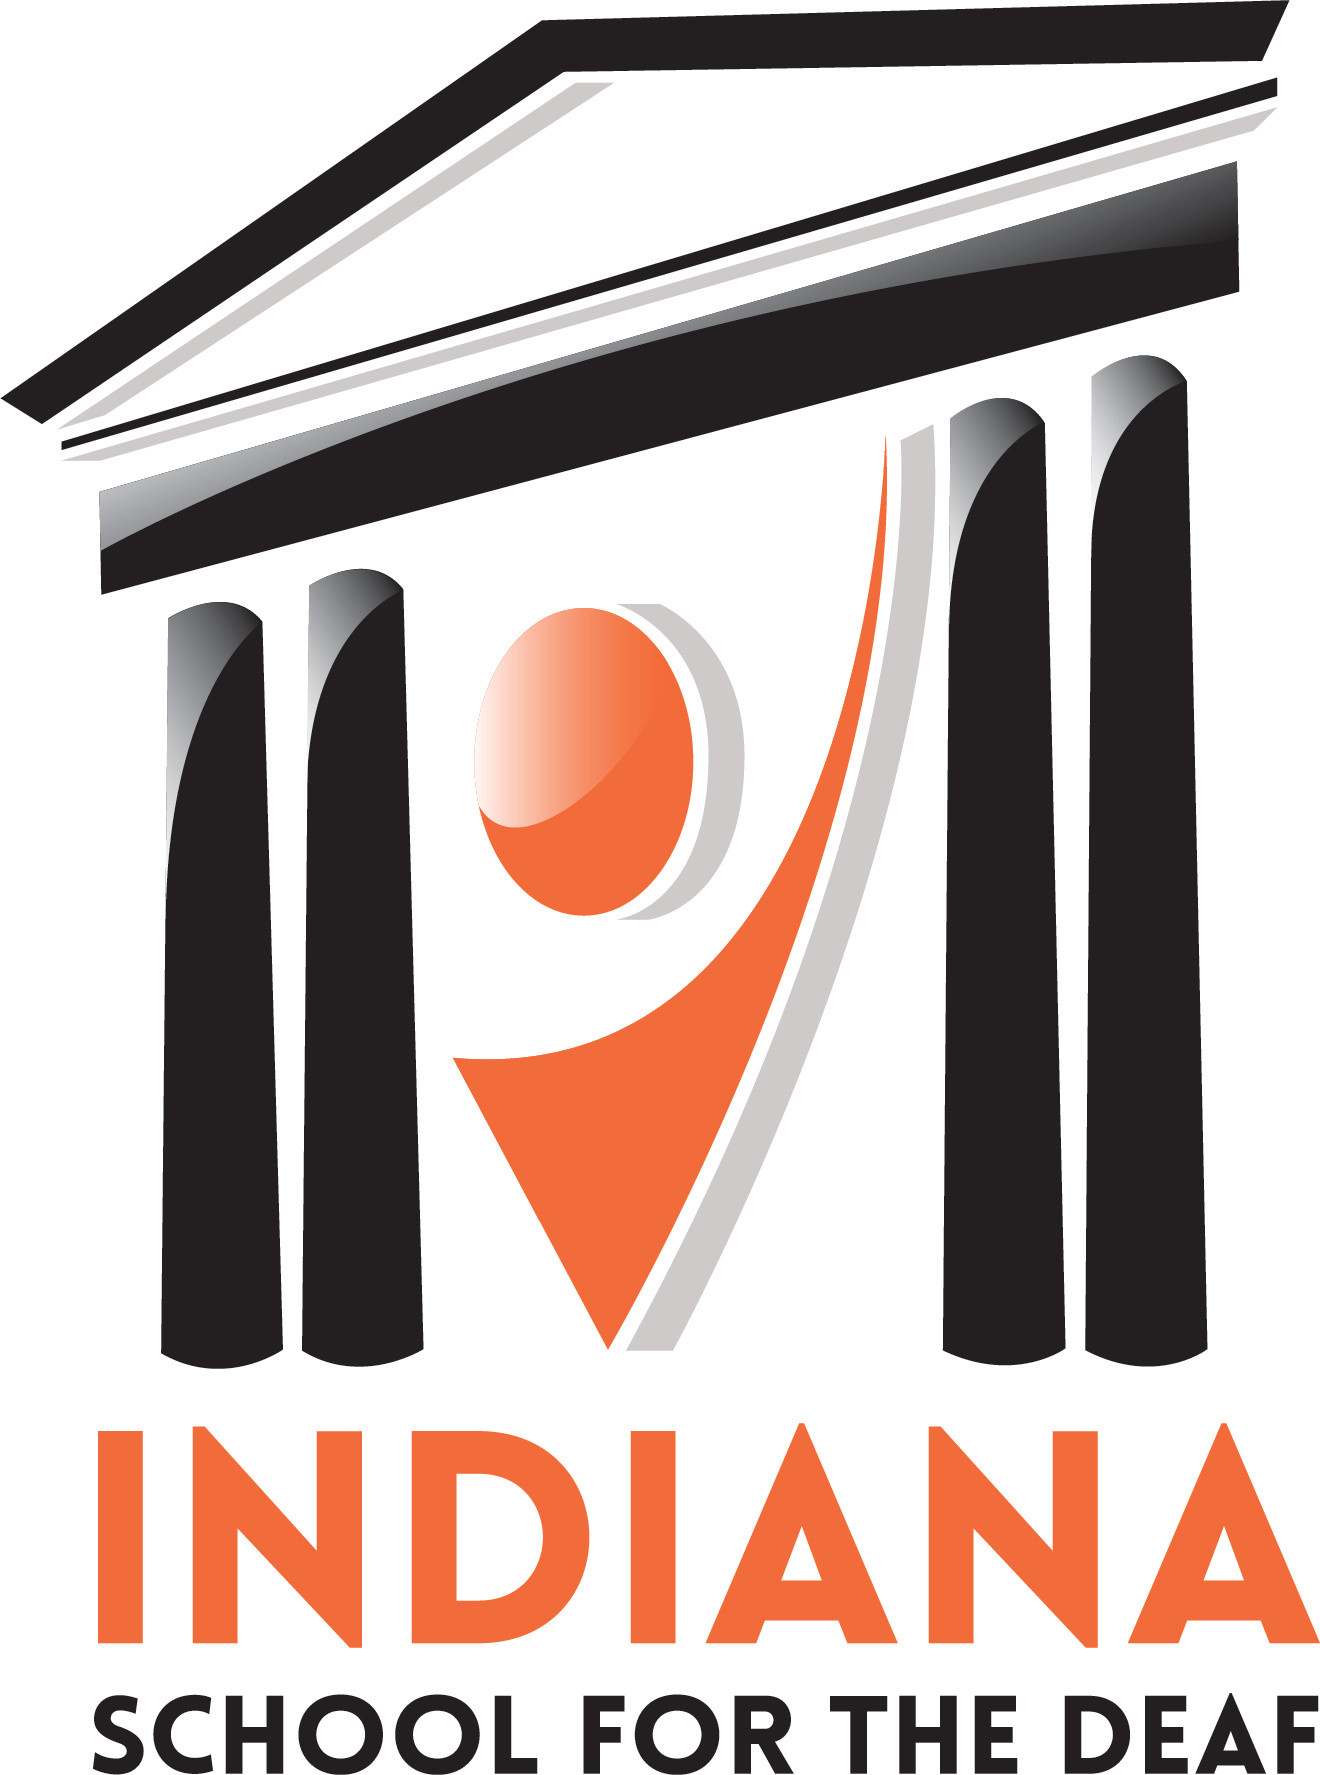 Deaf Education   Indiana School for the Deaf   United States